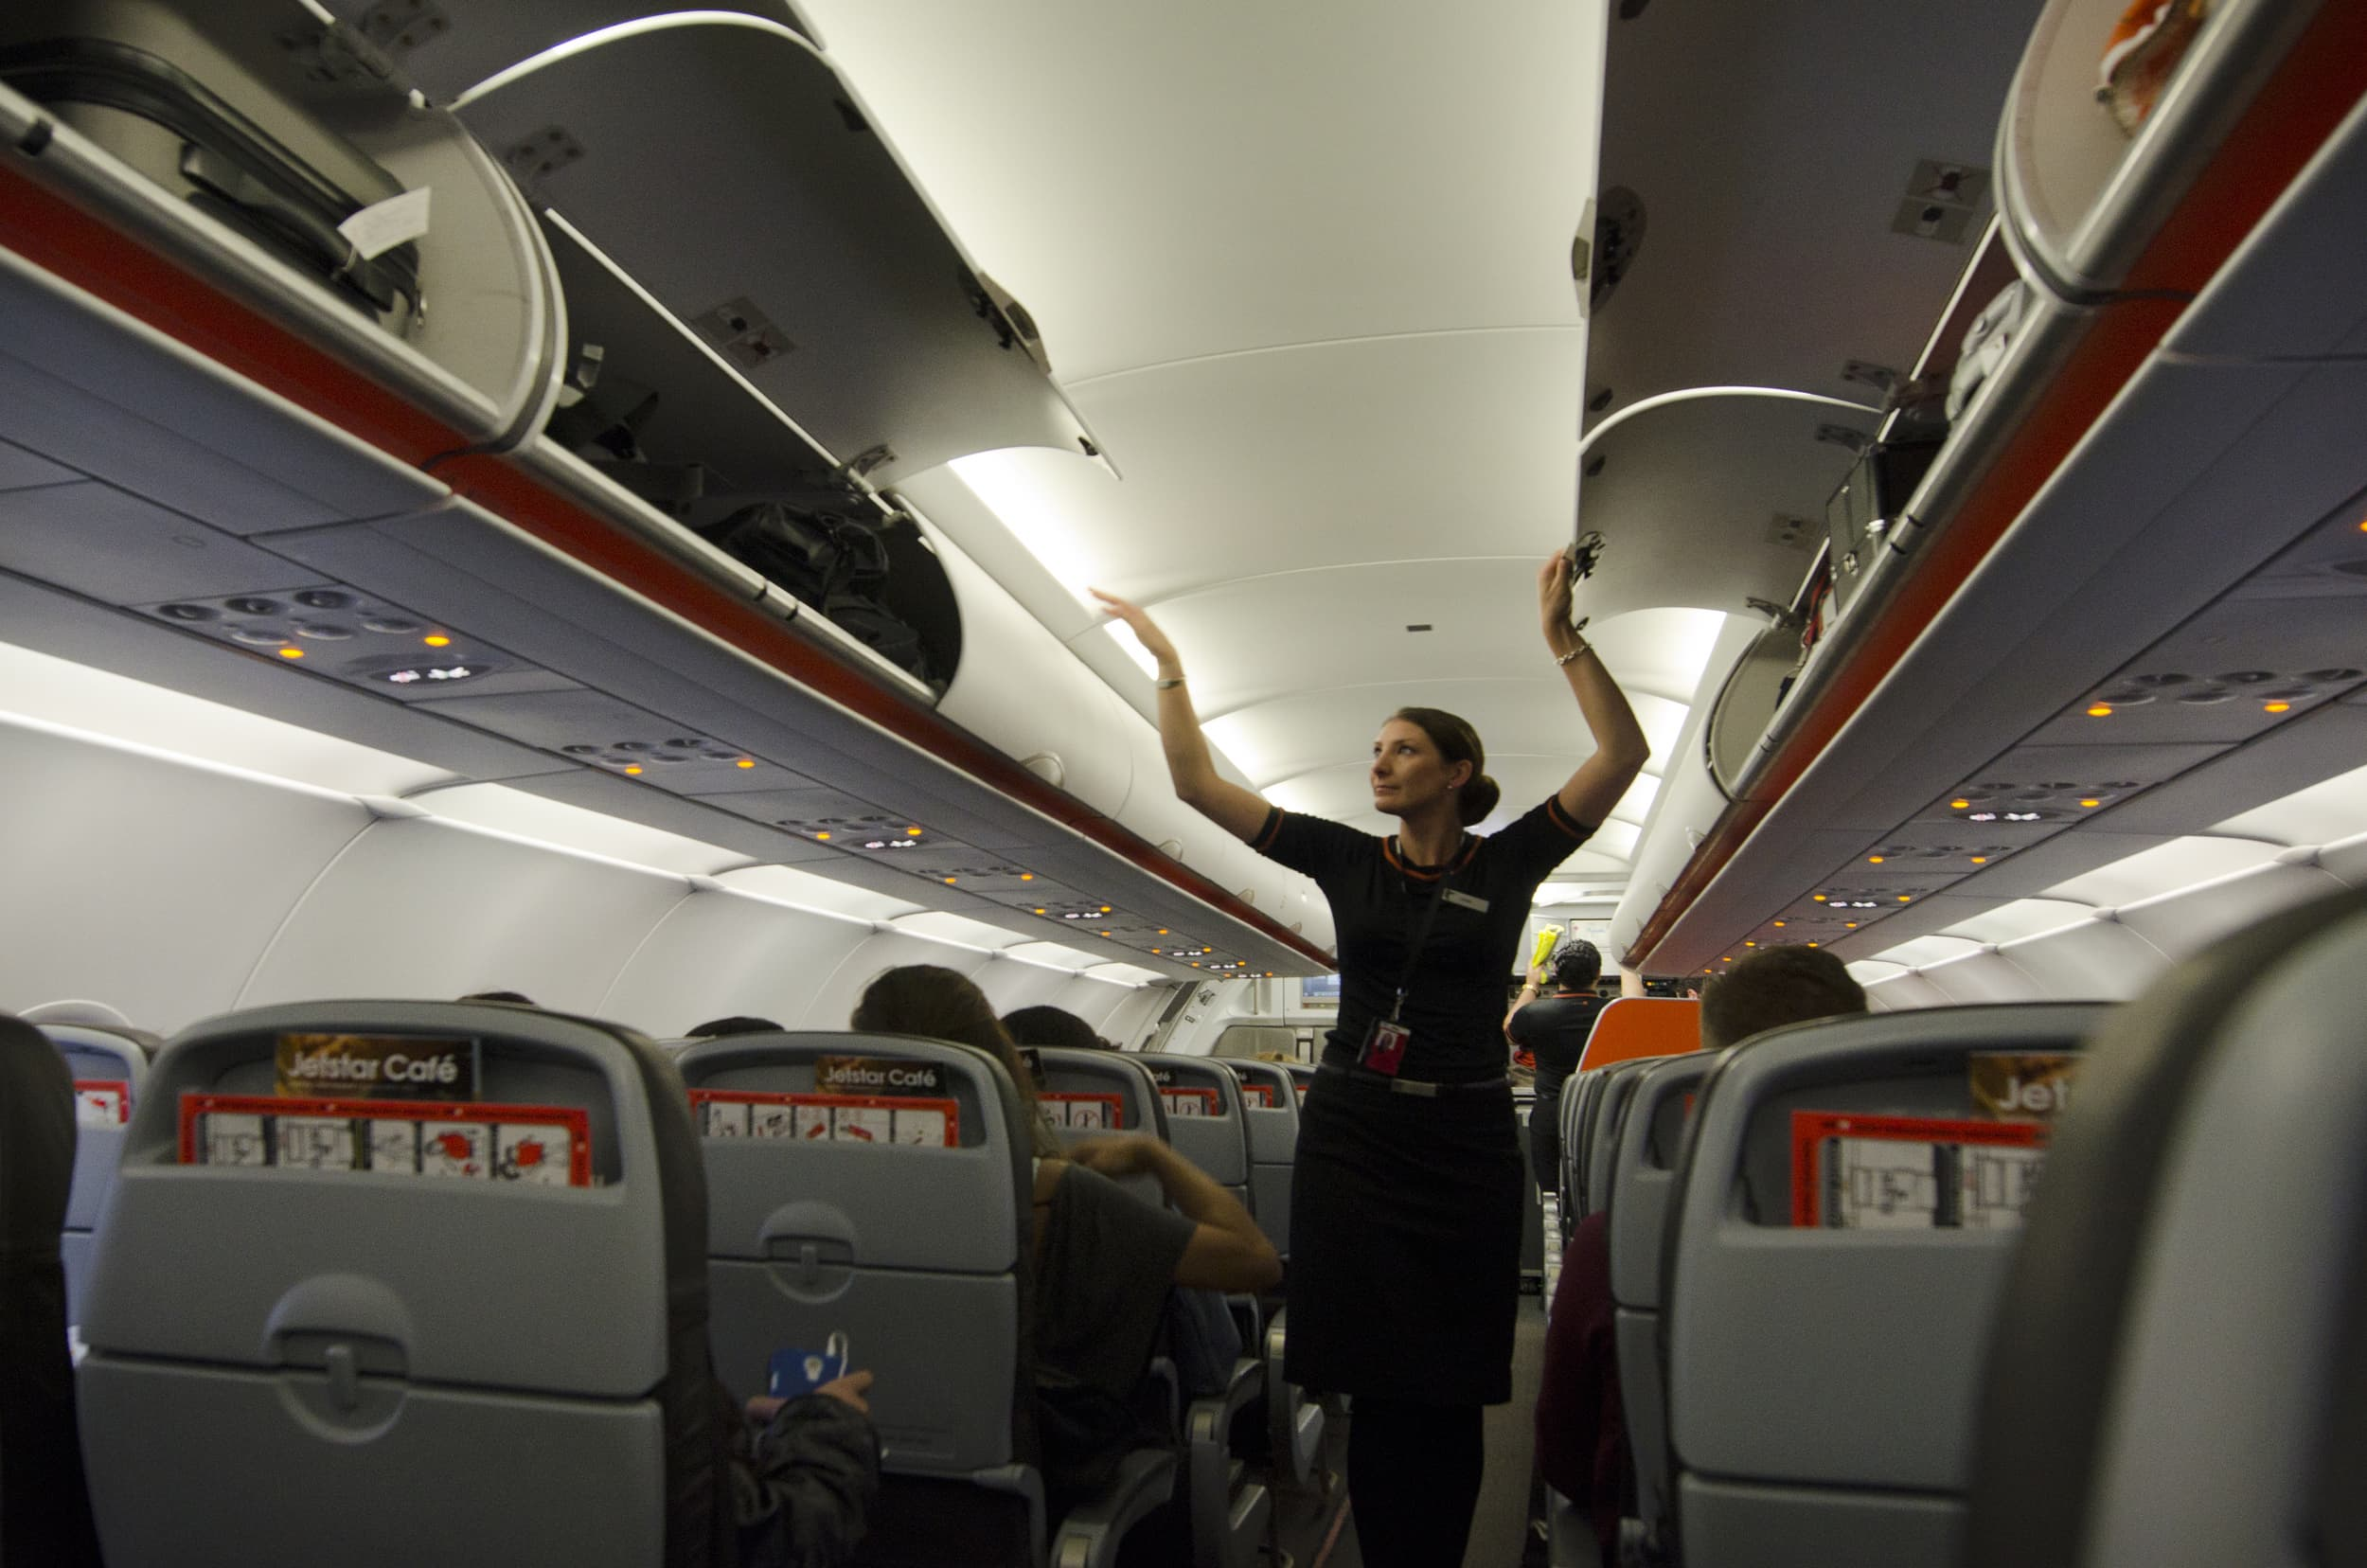 Compliance Training Online IATA DGR Cabin Crew, Passenger Handling, and Security course